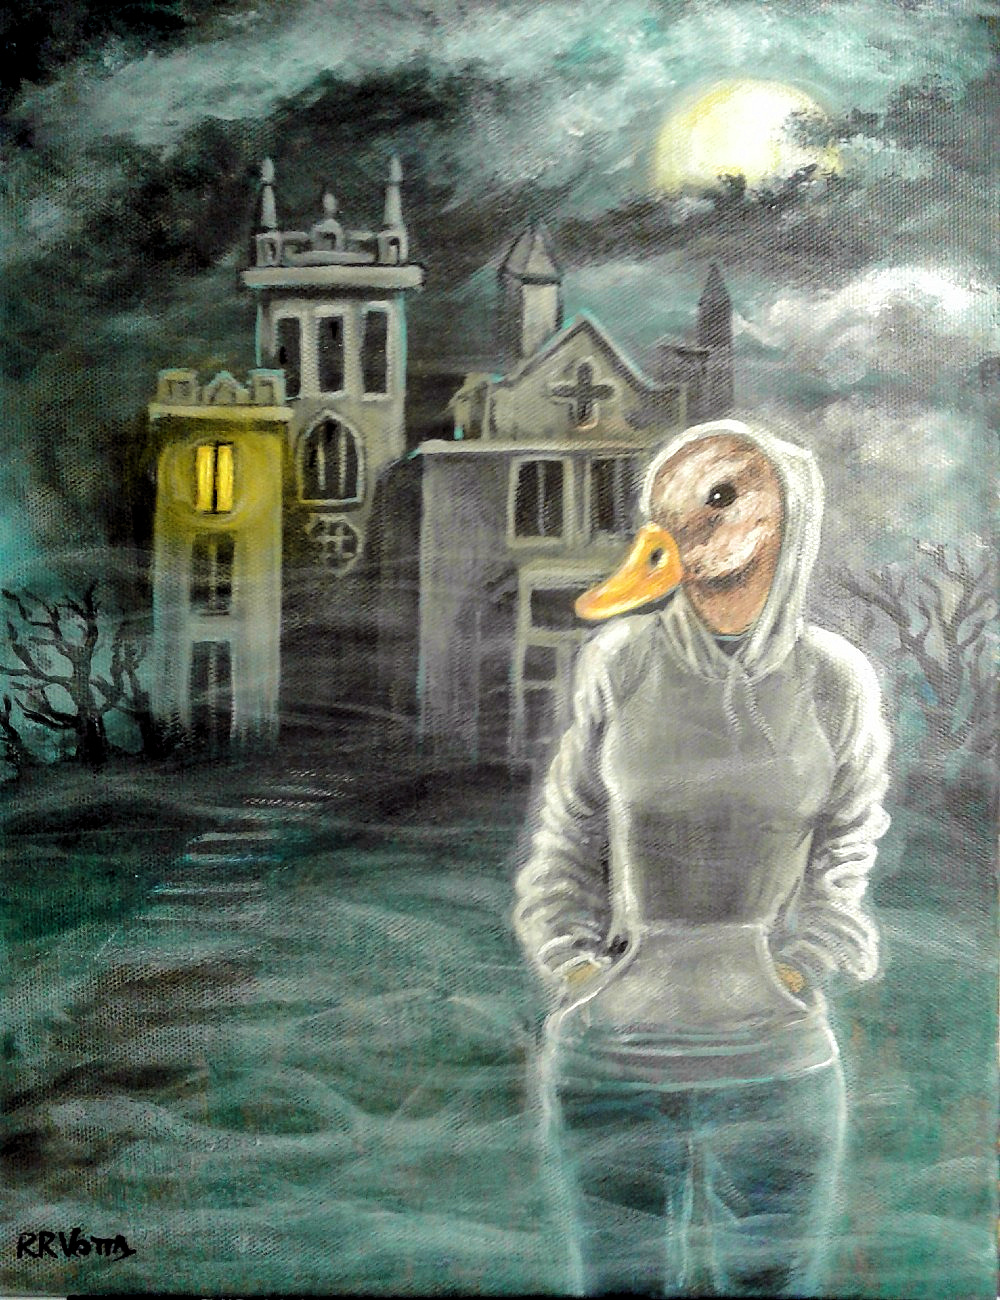 Duck-Girl & The Haunted Mansion